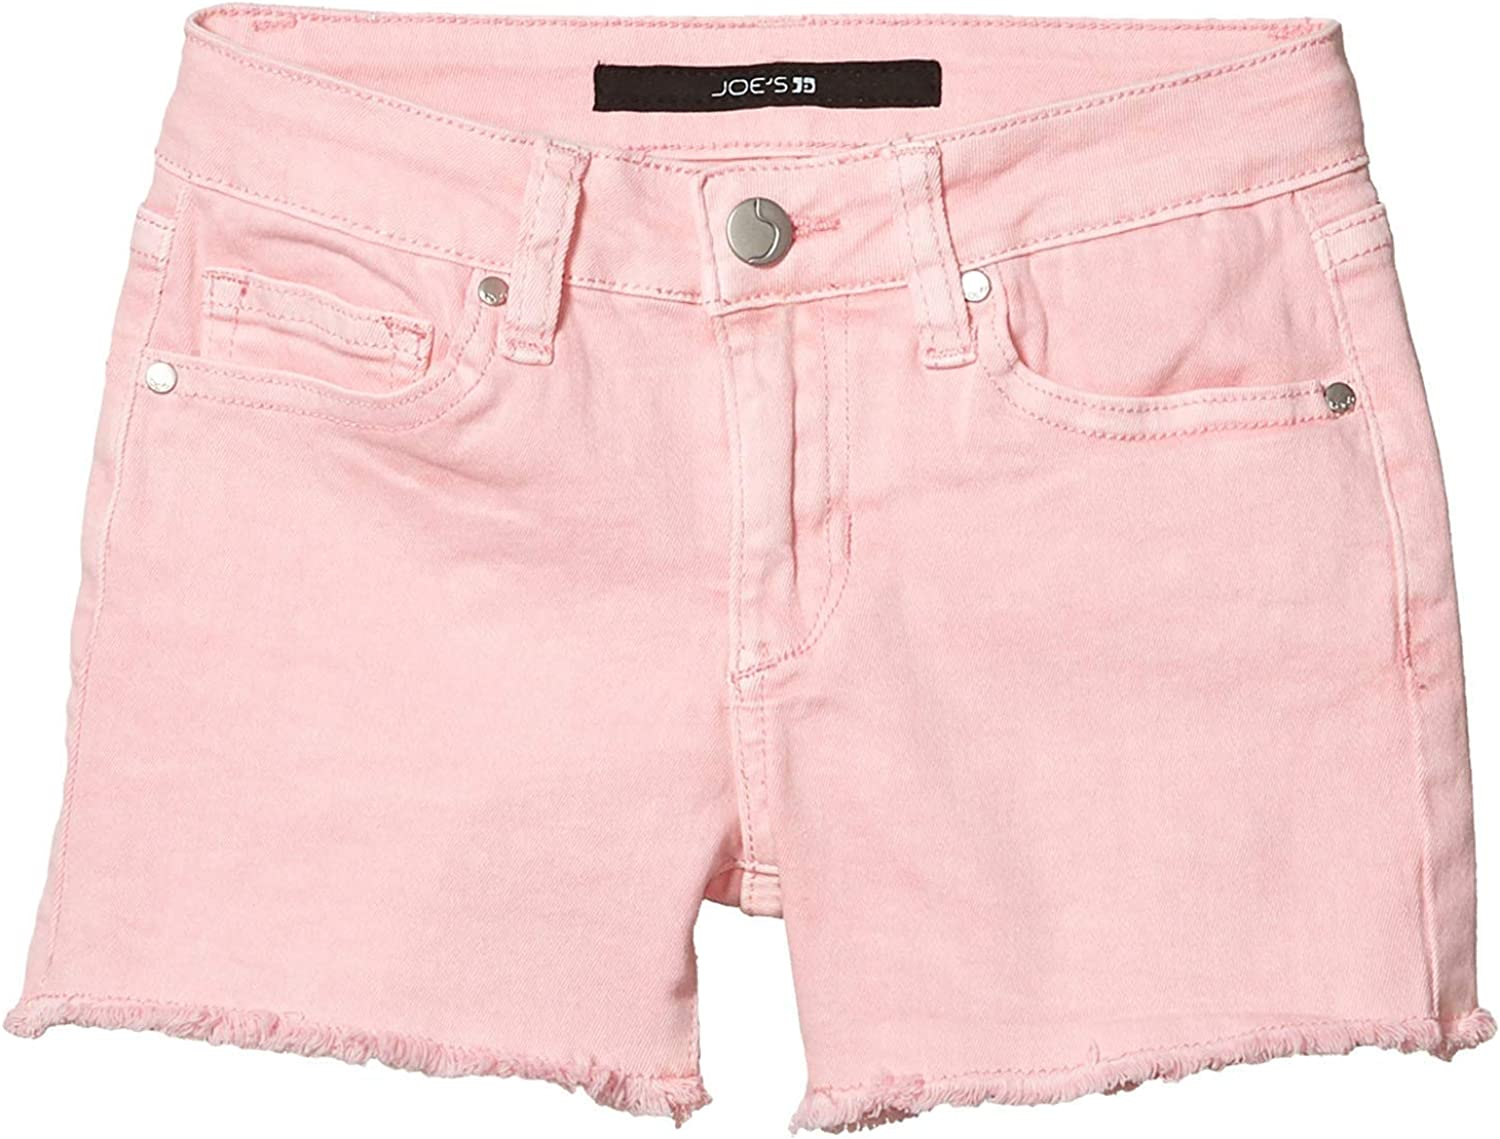 Joe's Selling Jeans Kids Girl's The Max 43% OFF Big Markie Little Shorts